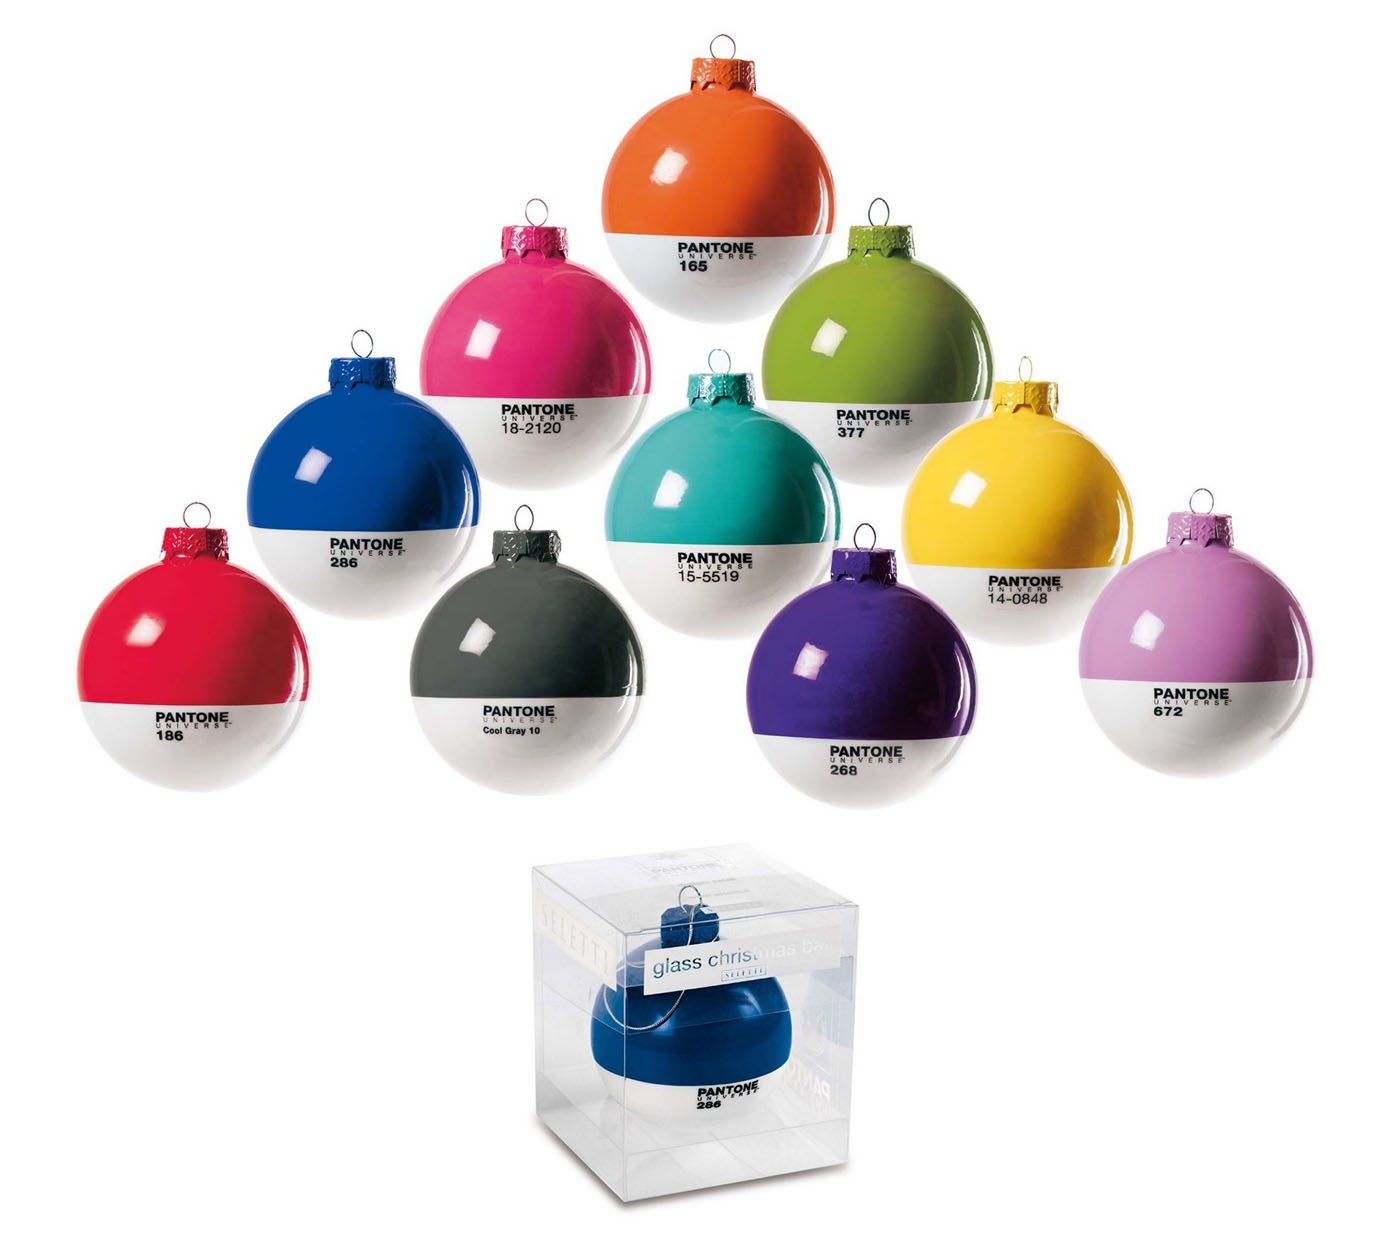 Pantone Holiday Ornaments